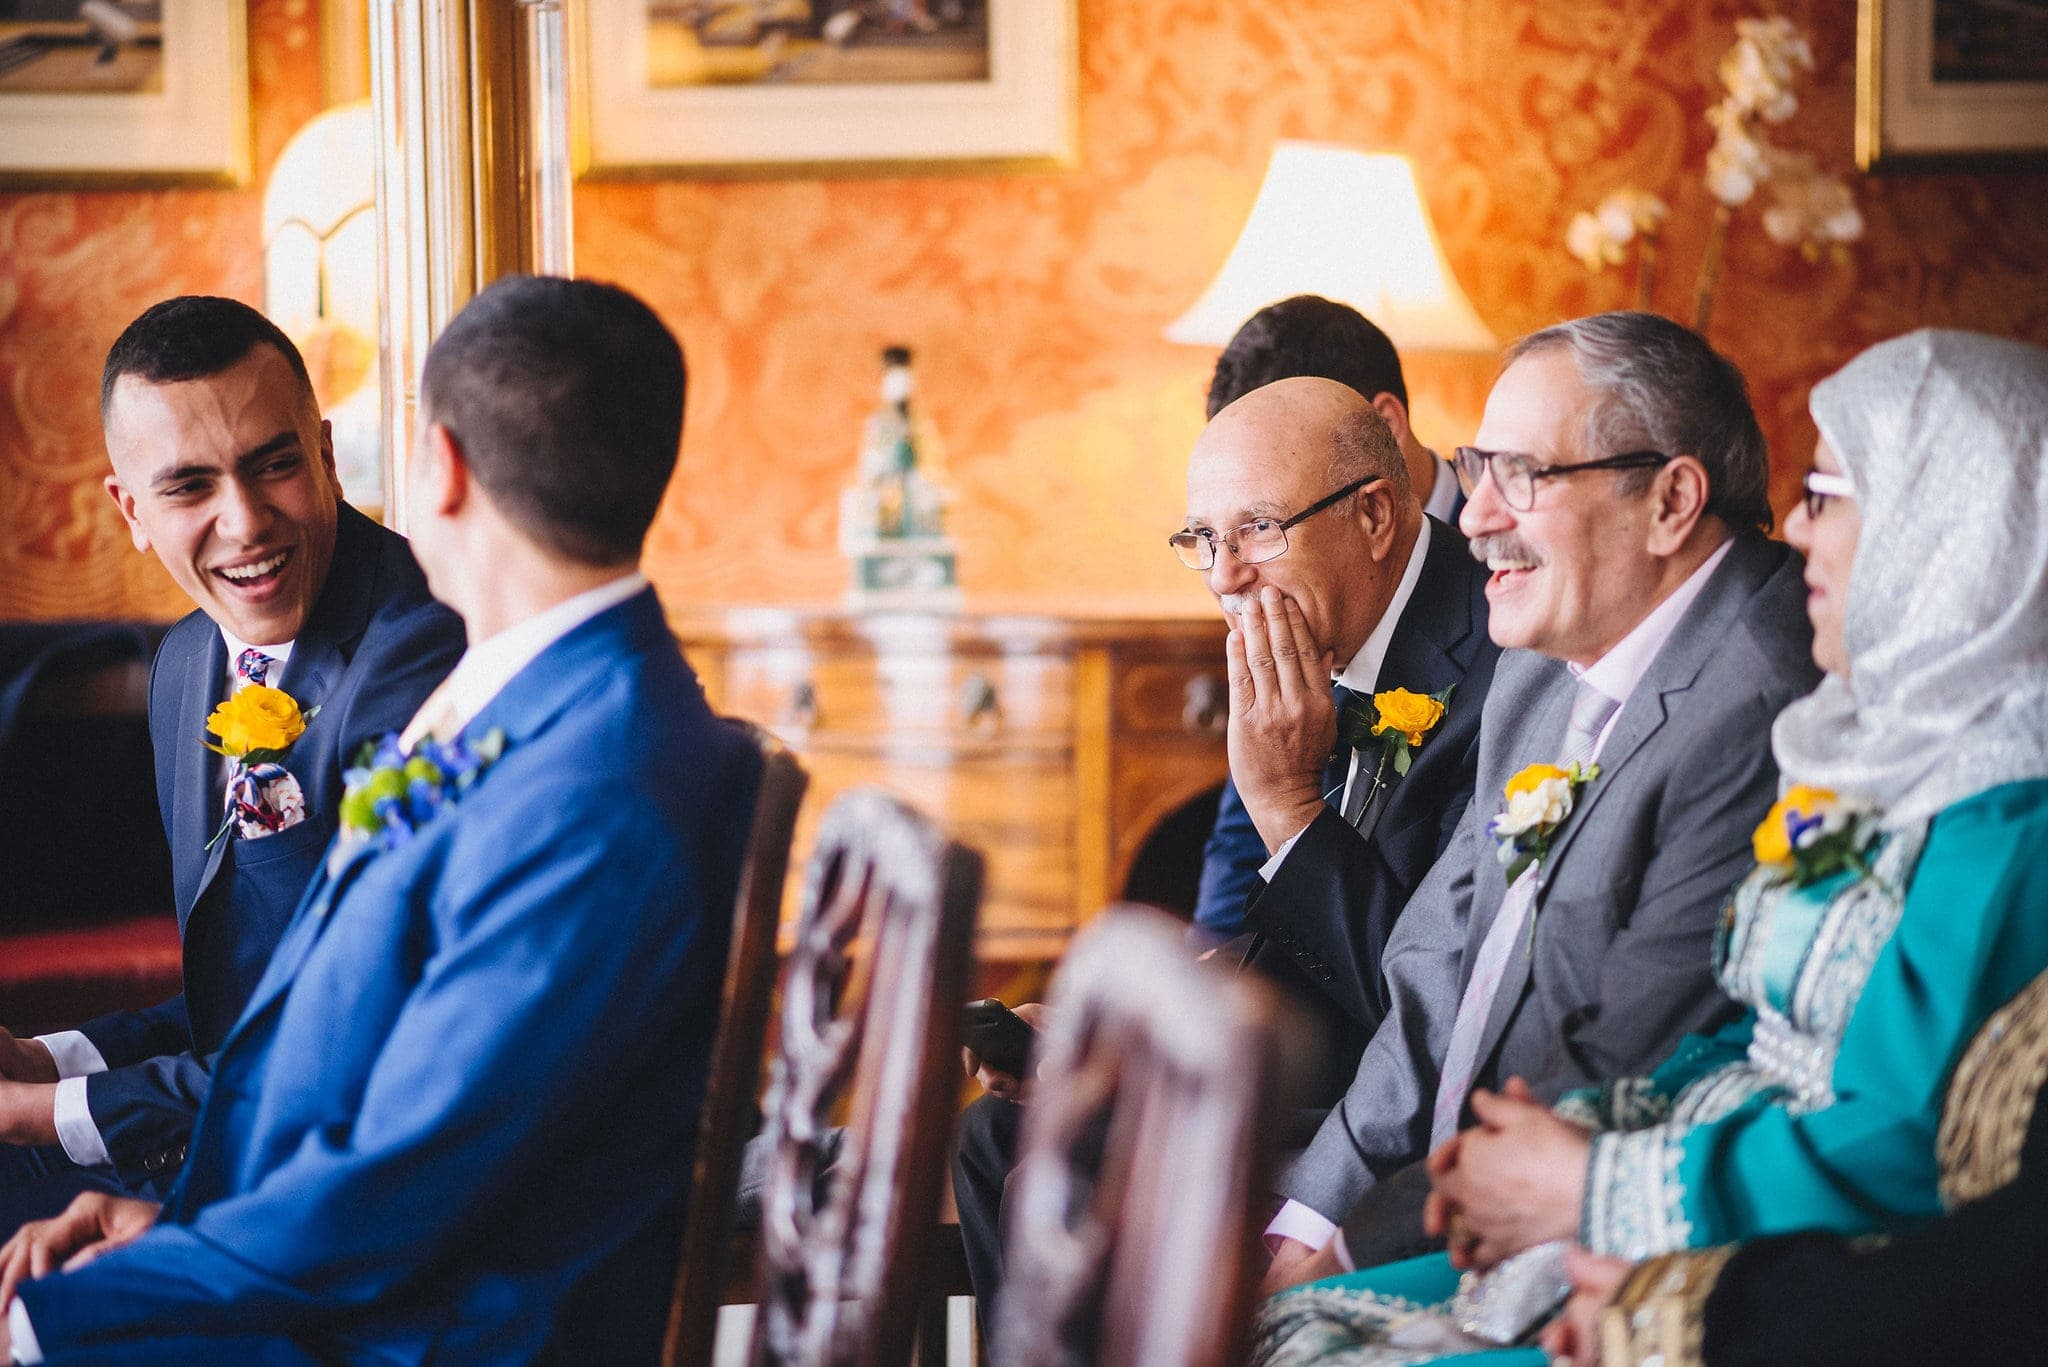 guests laugh together at wedding ceremony in Brighton Royal Pavilion